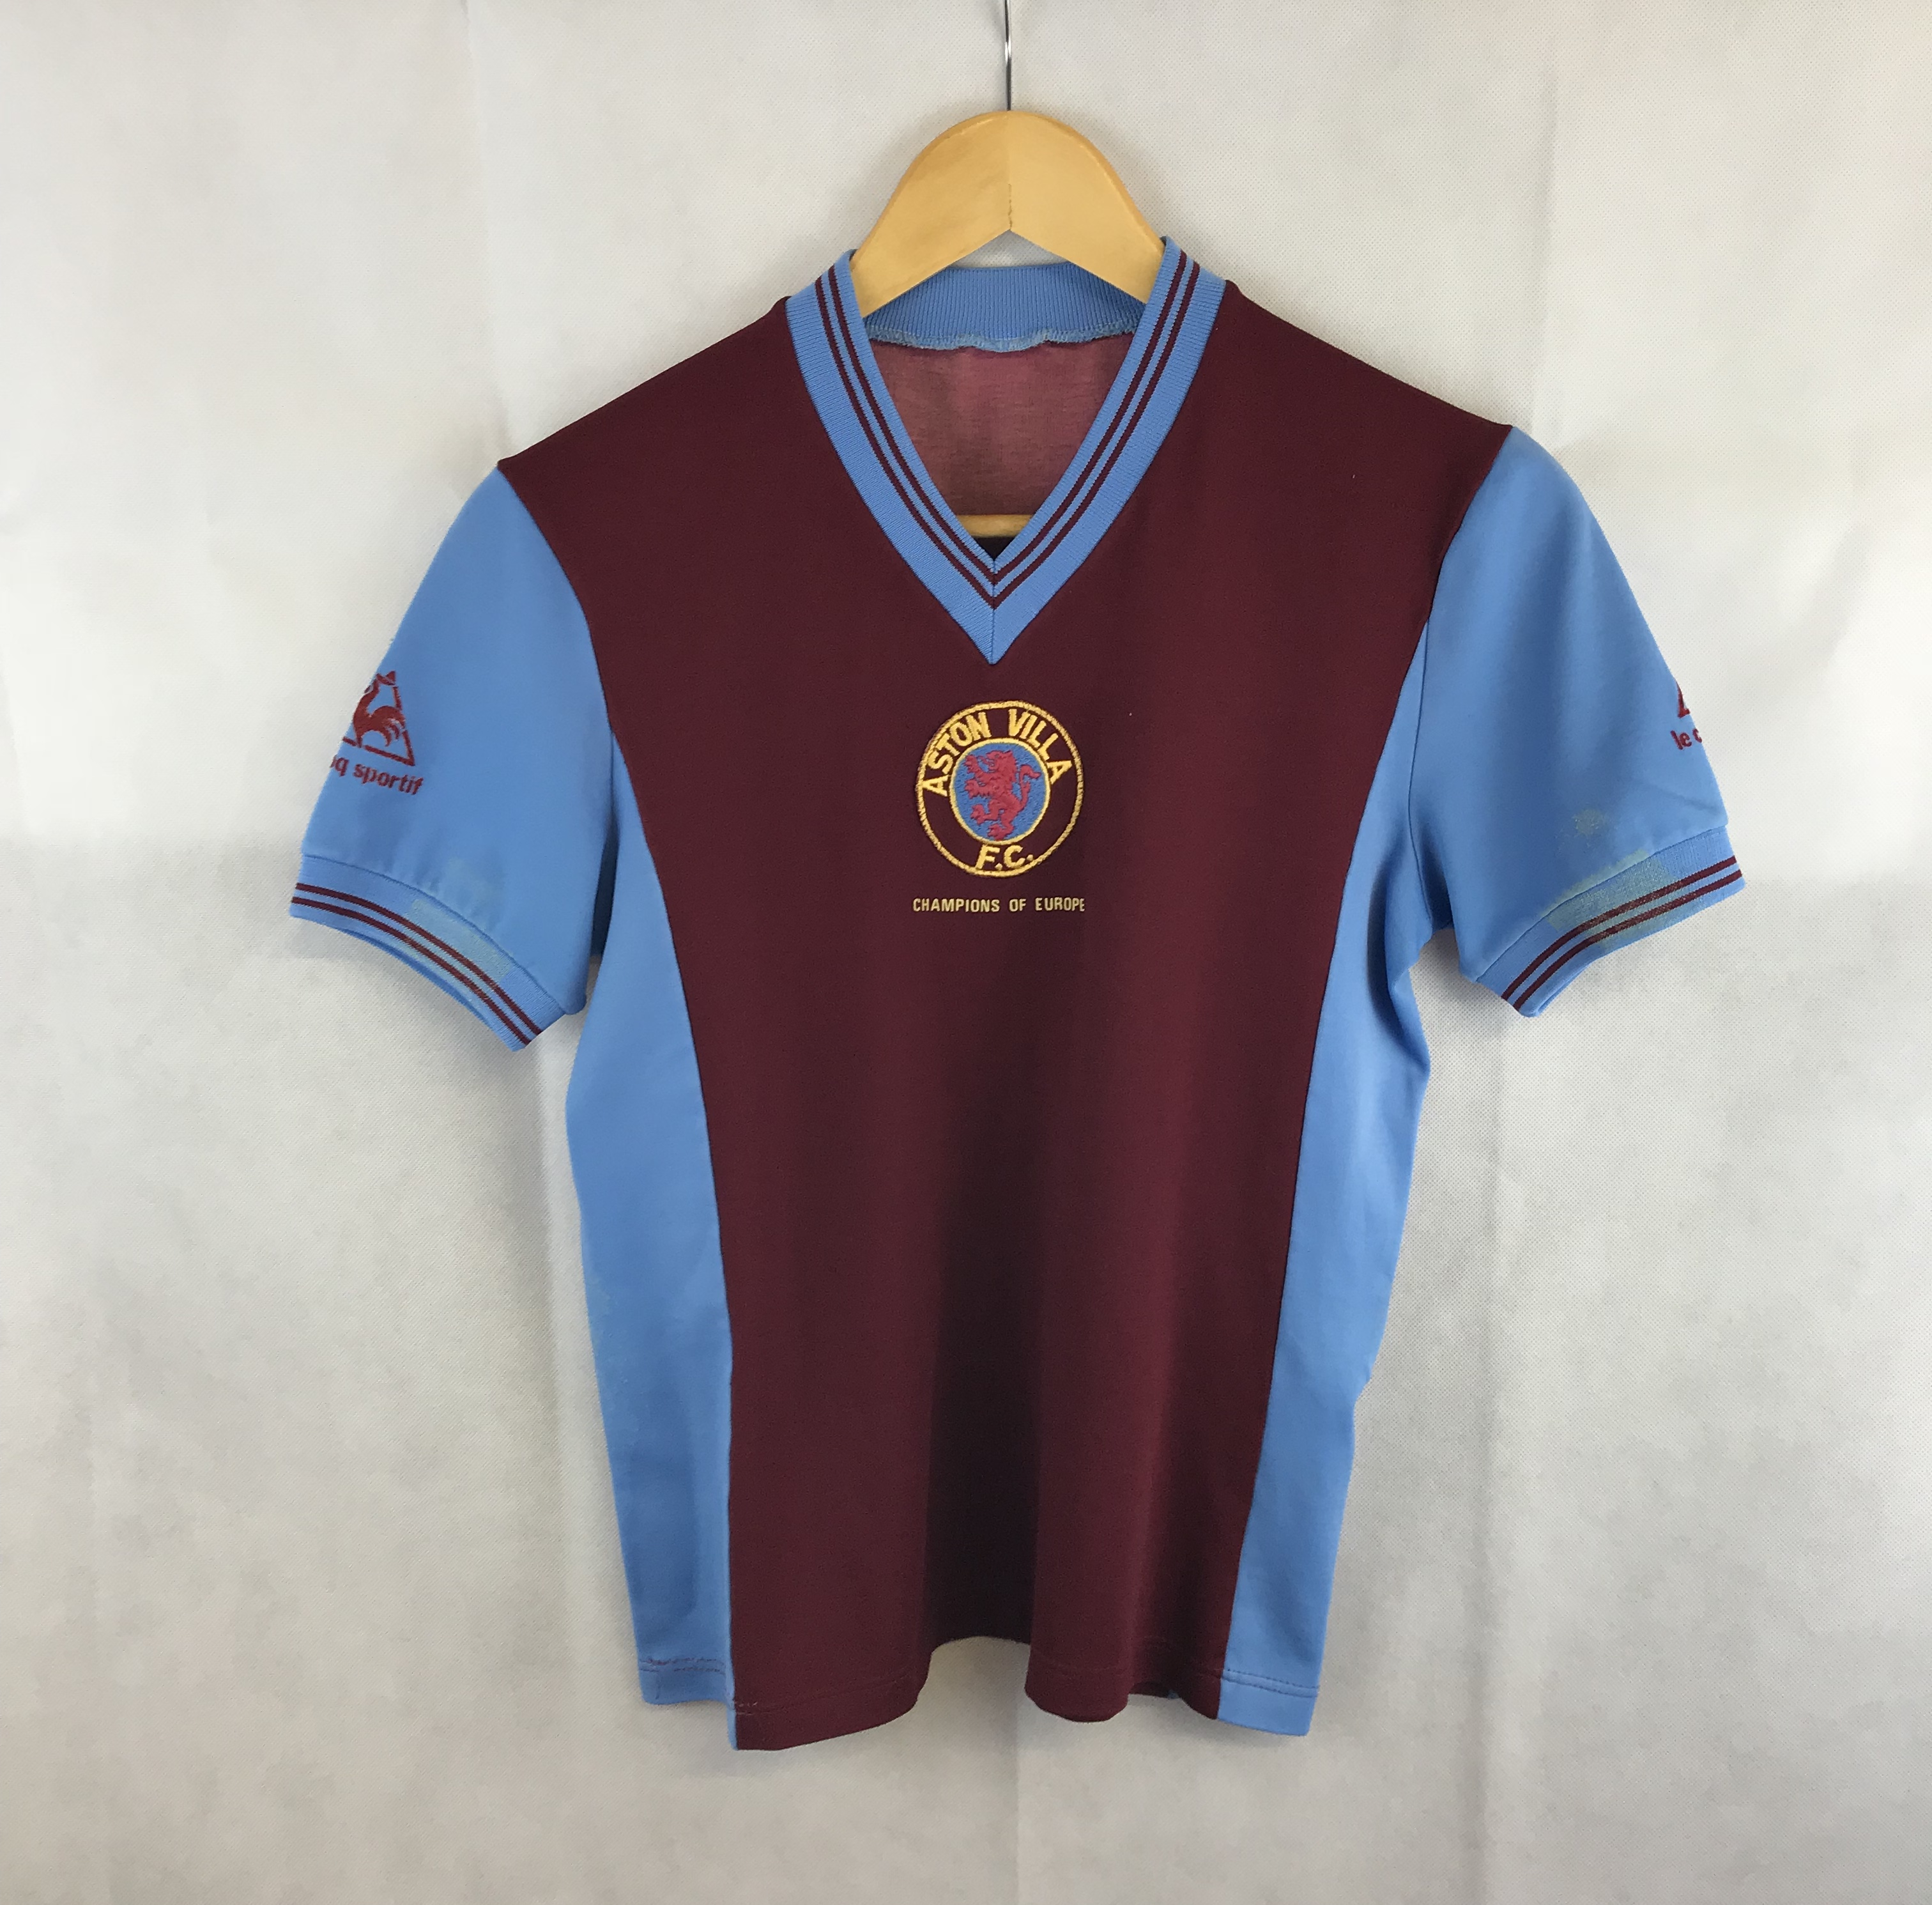 new product e7e6d 63305 Aston Villa Home Football Shirt 1981/82 Adults Small Le Coq Sportif